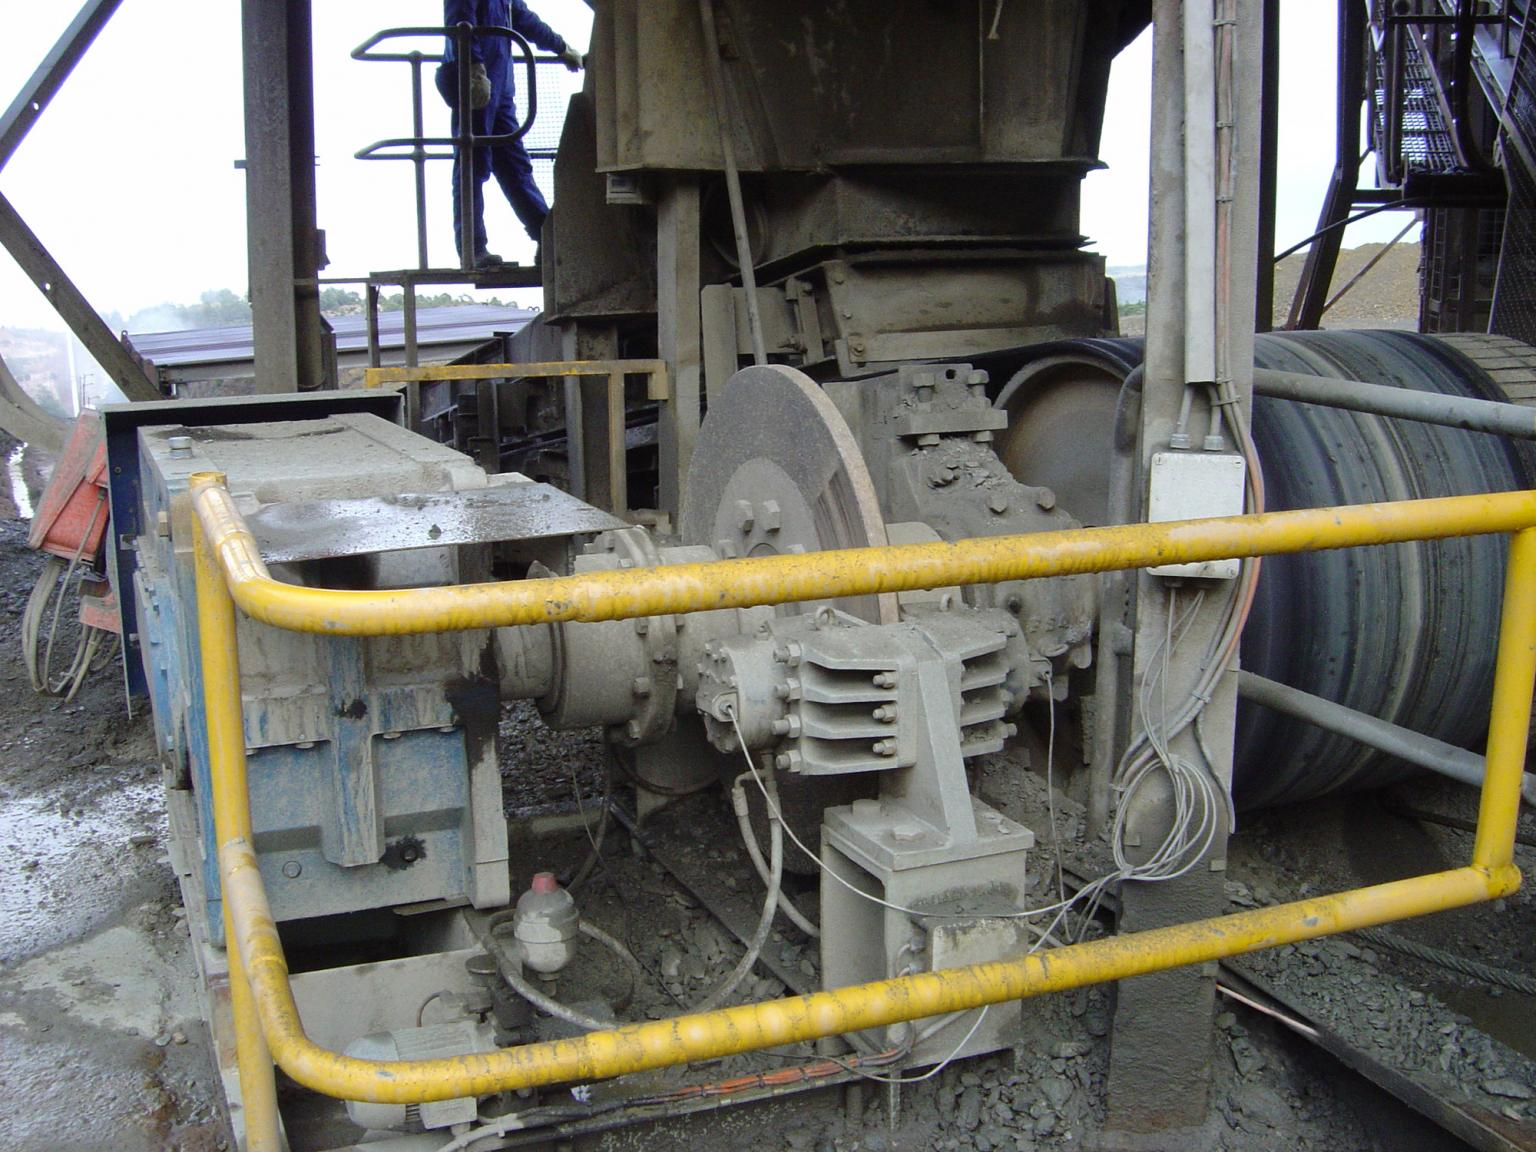 Twiflex, VS180 spring applied, hydraulic released brake units fitted to an overland coal conveyor in West Virginia